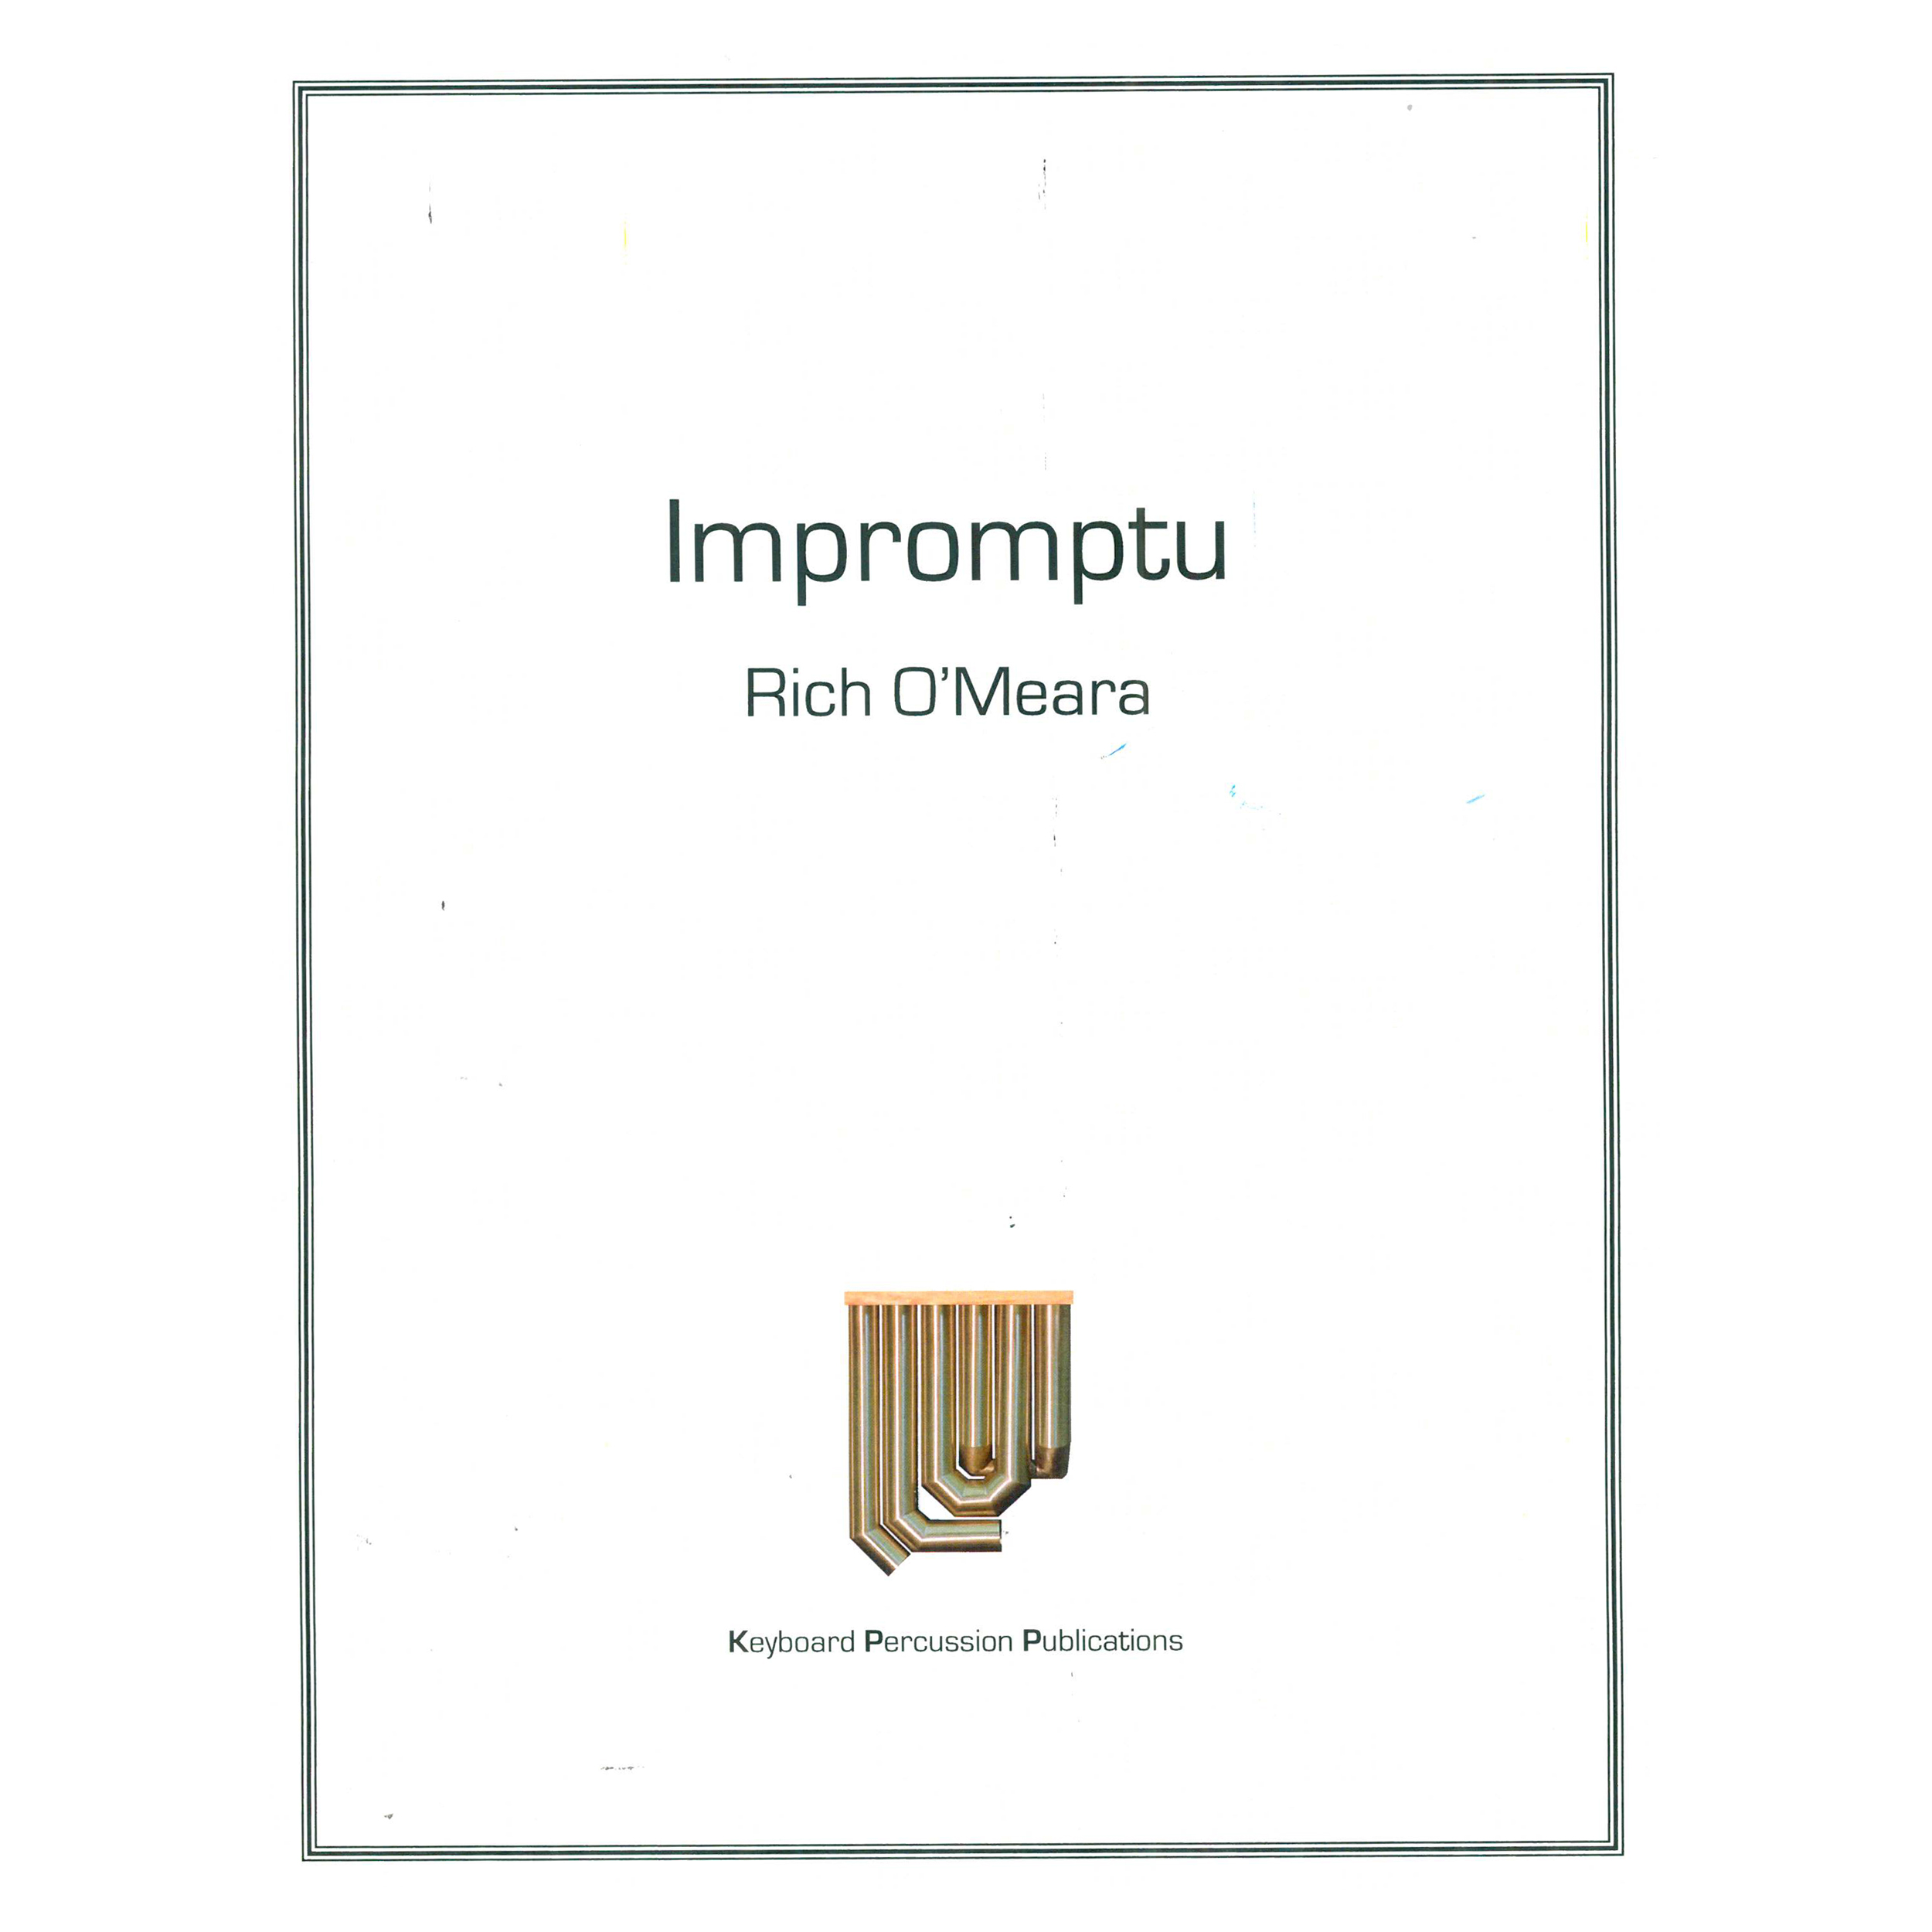 Impromptu by Rich O